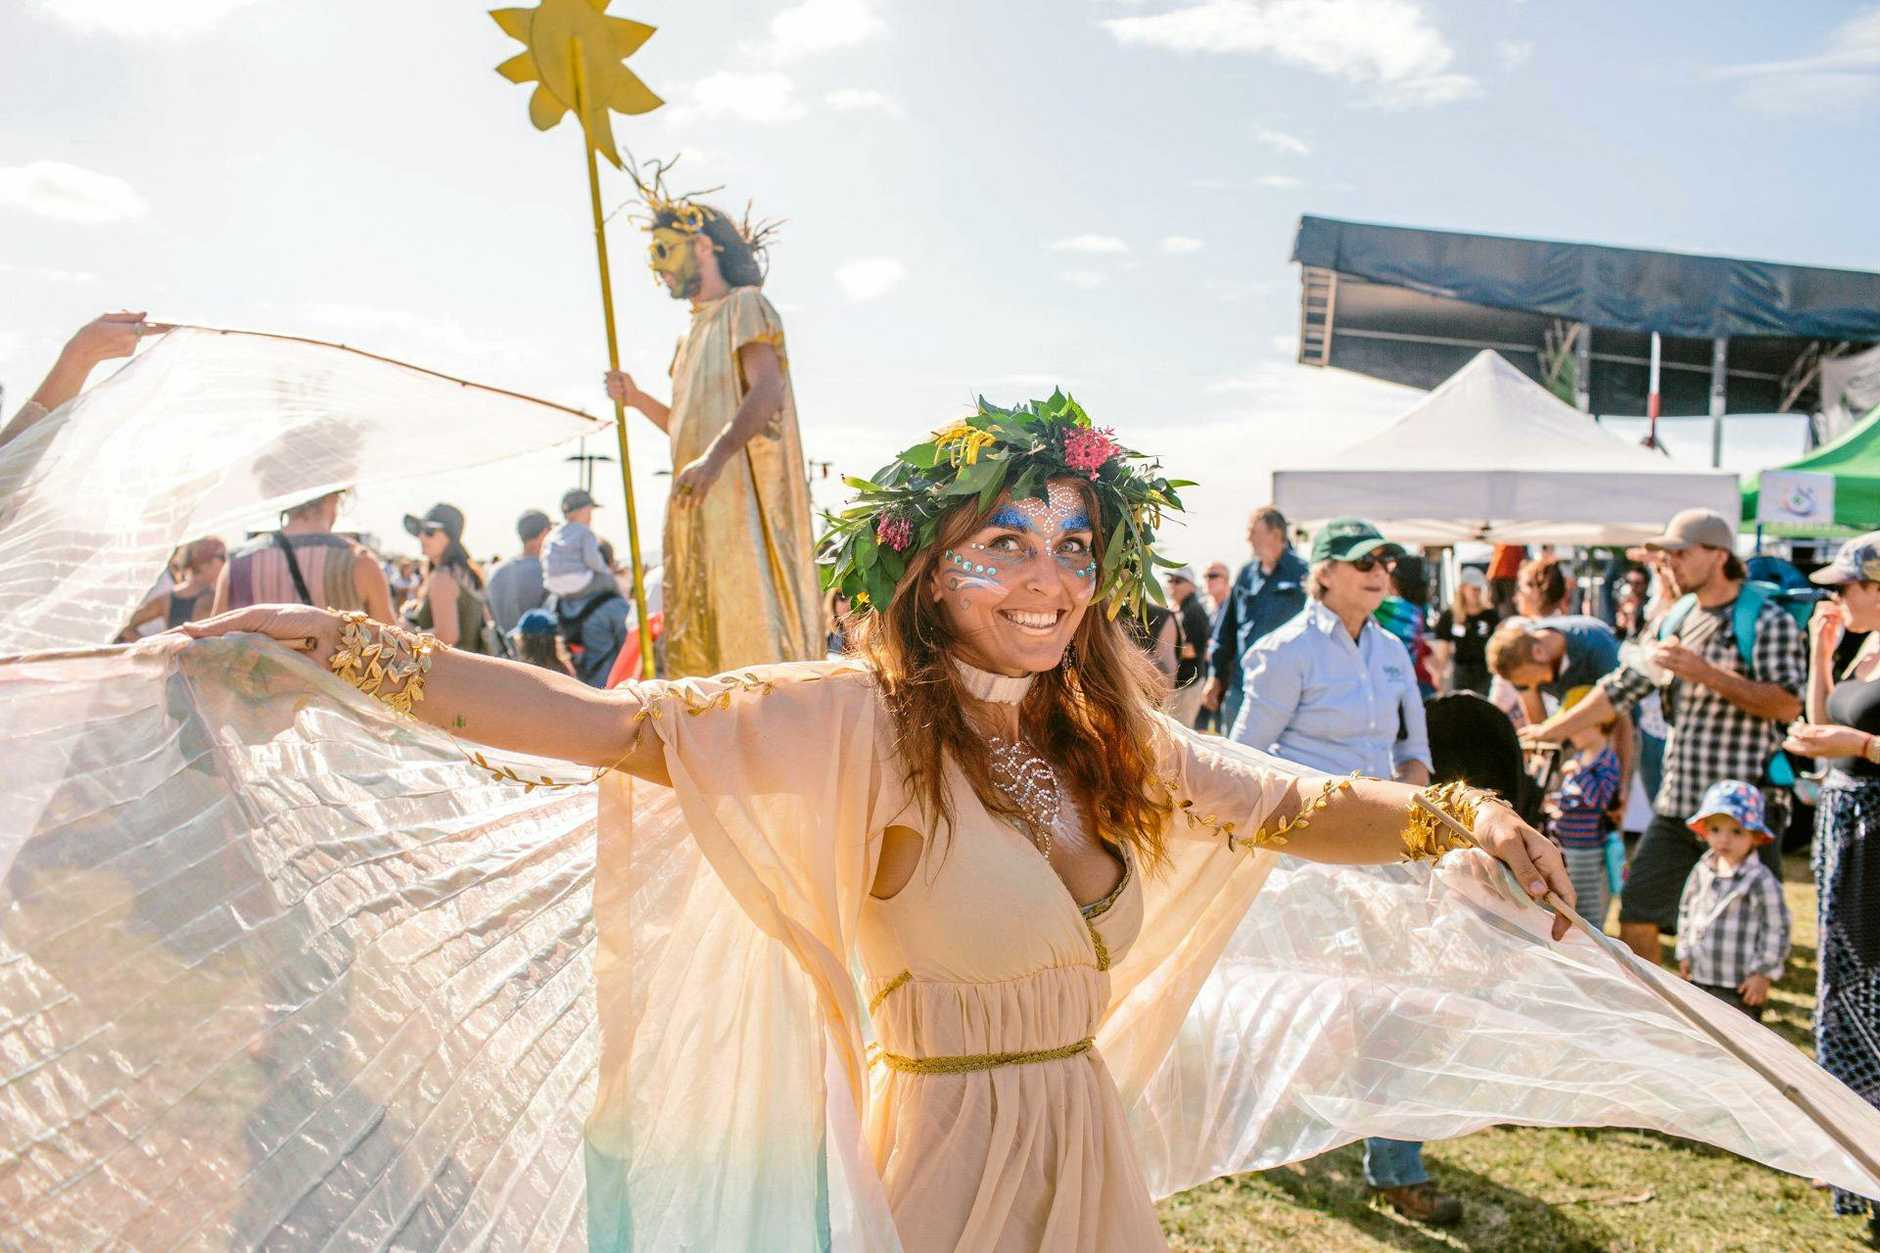 ON SHOW: The World Environment Day Festival 2019 will showcase ecologically-responsible living, live music and vegan food.